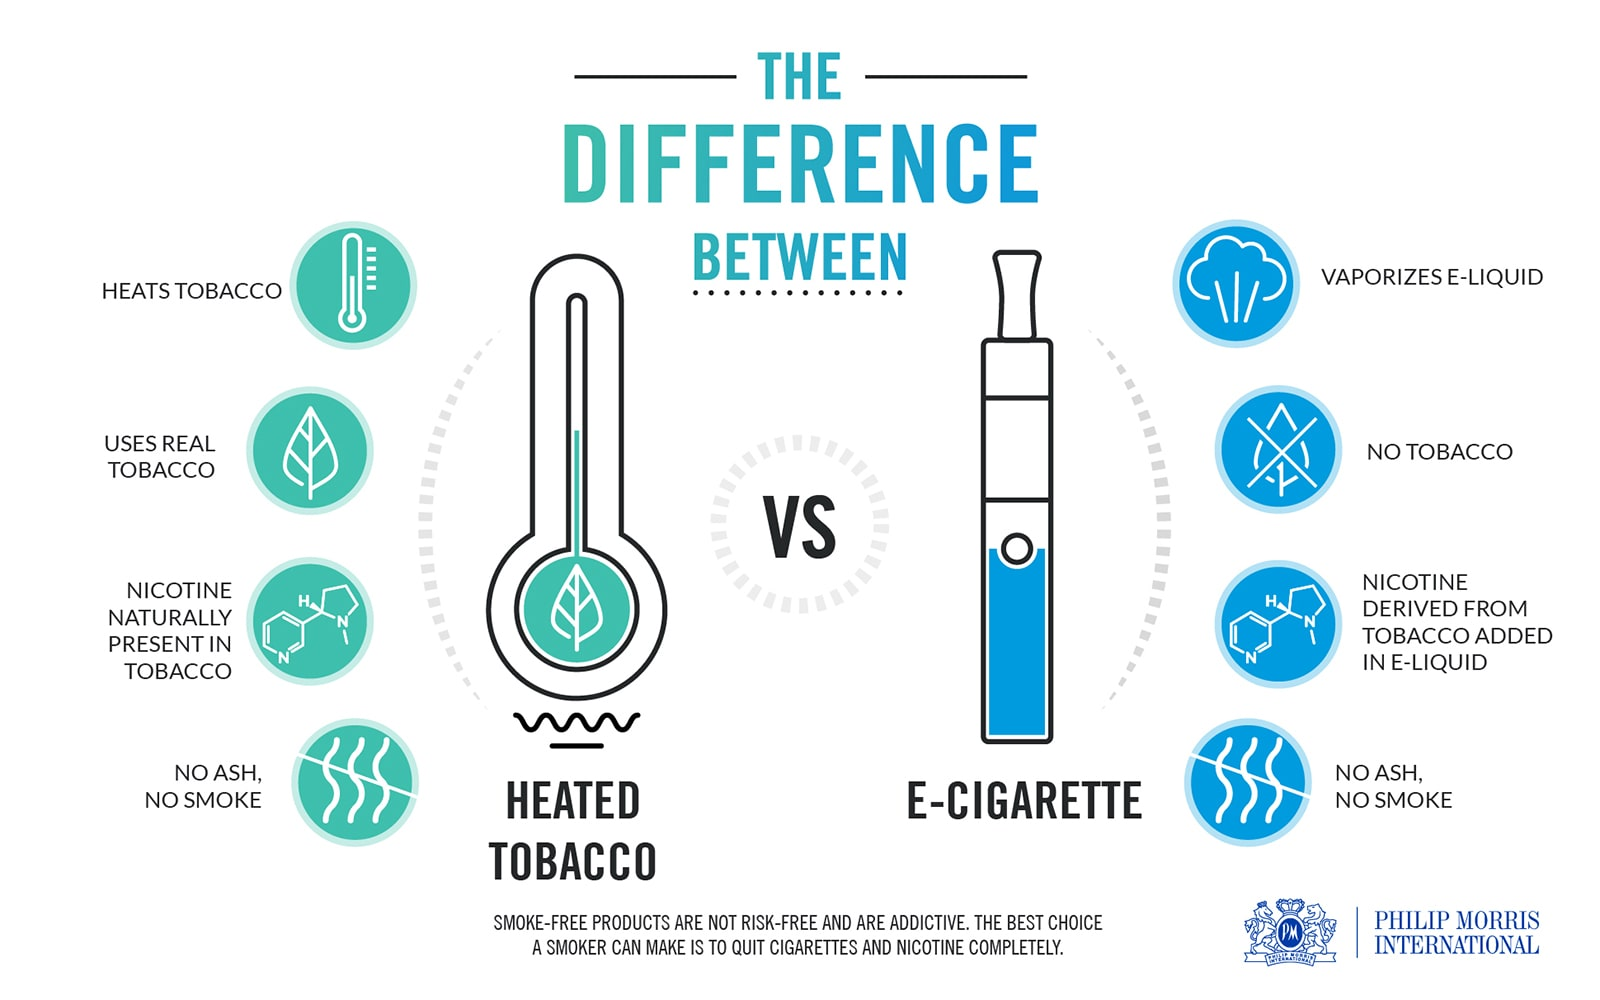 Difference between heated tobacco vs e-cigs HIGH crop 1